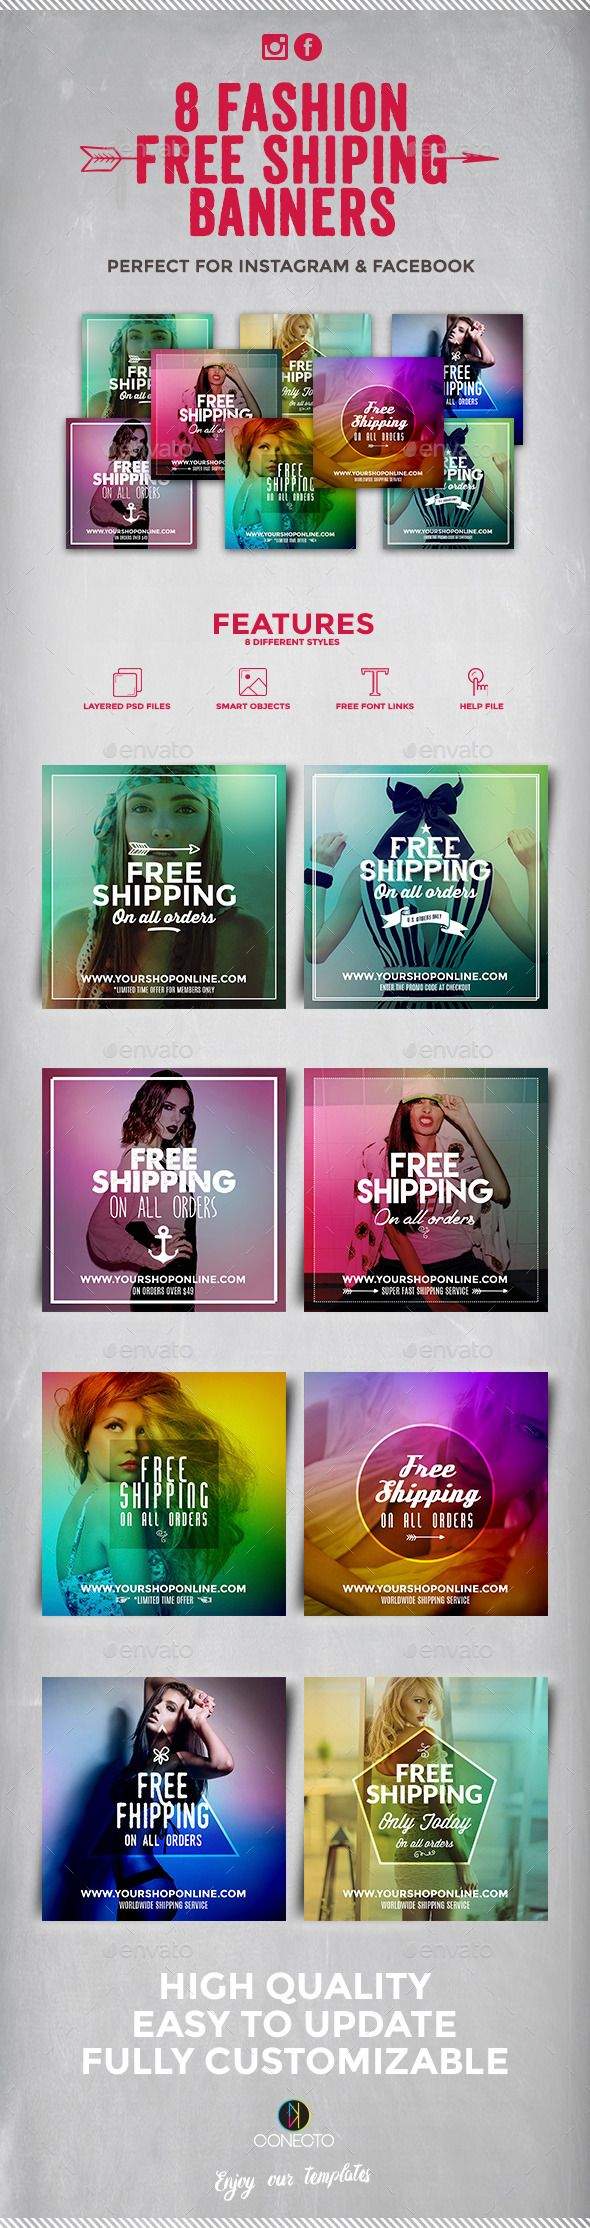 101 best Instagram cover images on Pinterest | Web banners ...